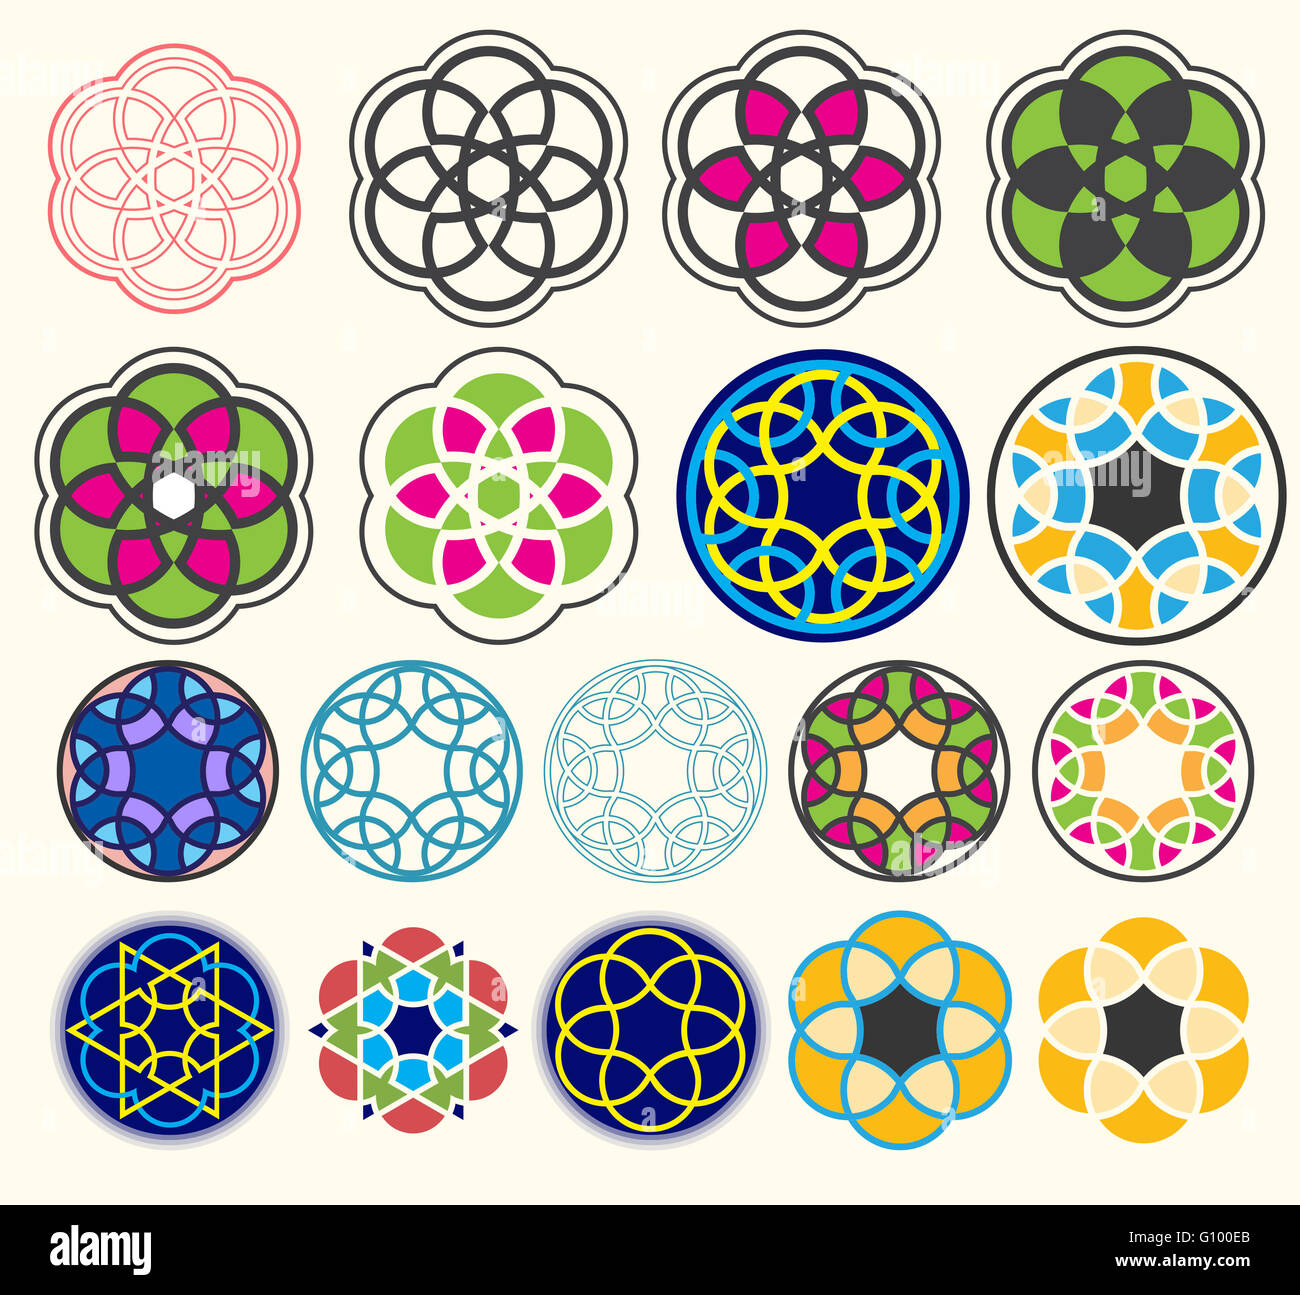 Islamic Book Cover Design Vector ~ A design of geometric shapes perfect set card book